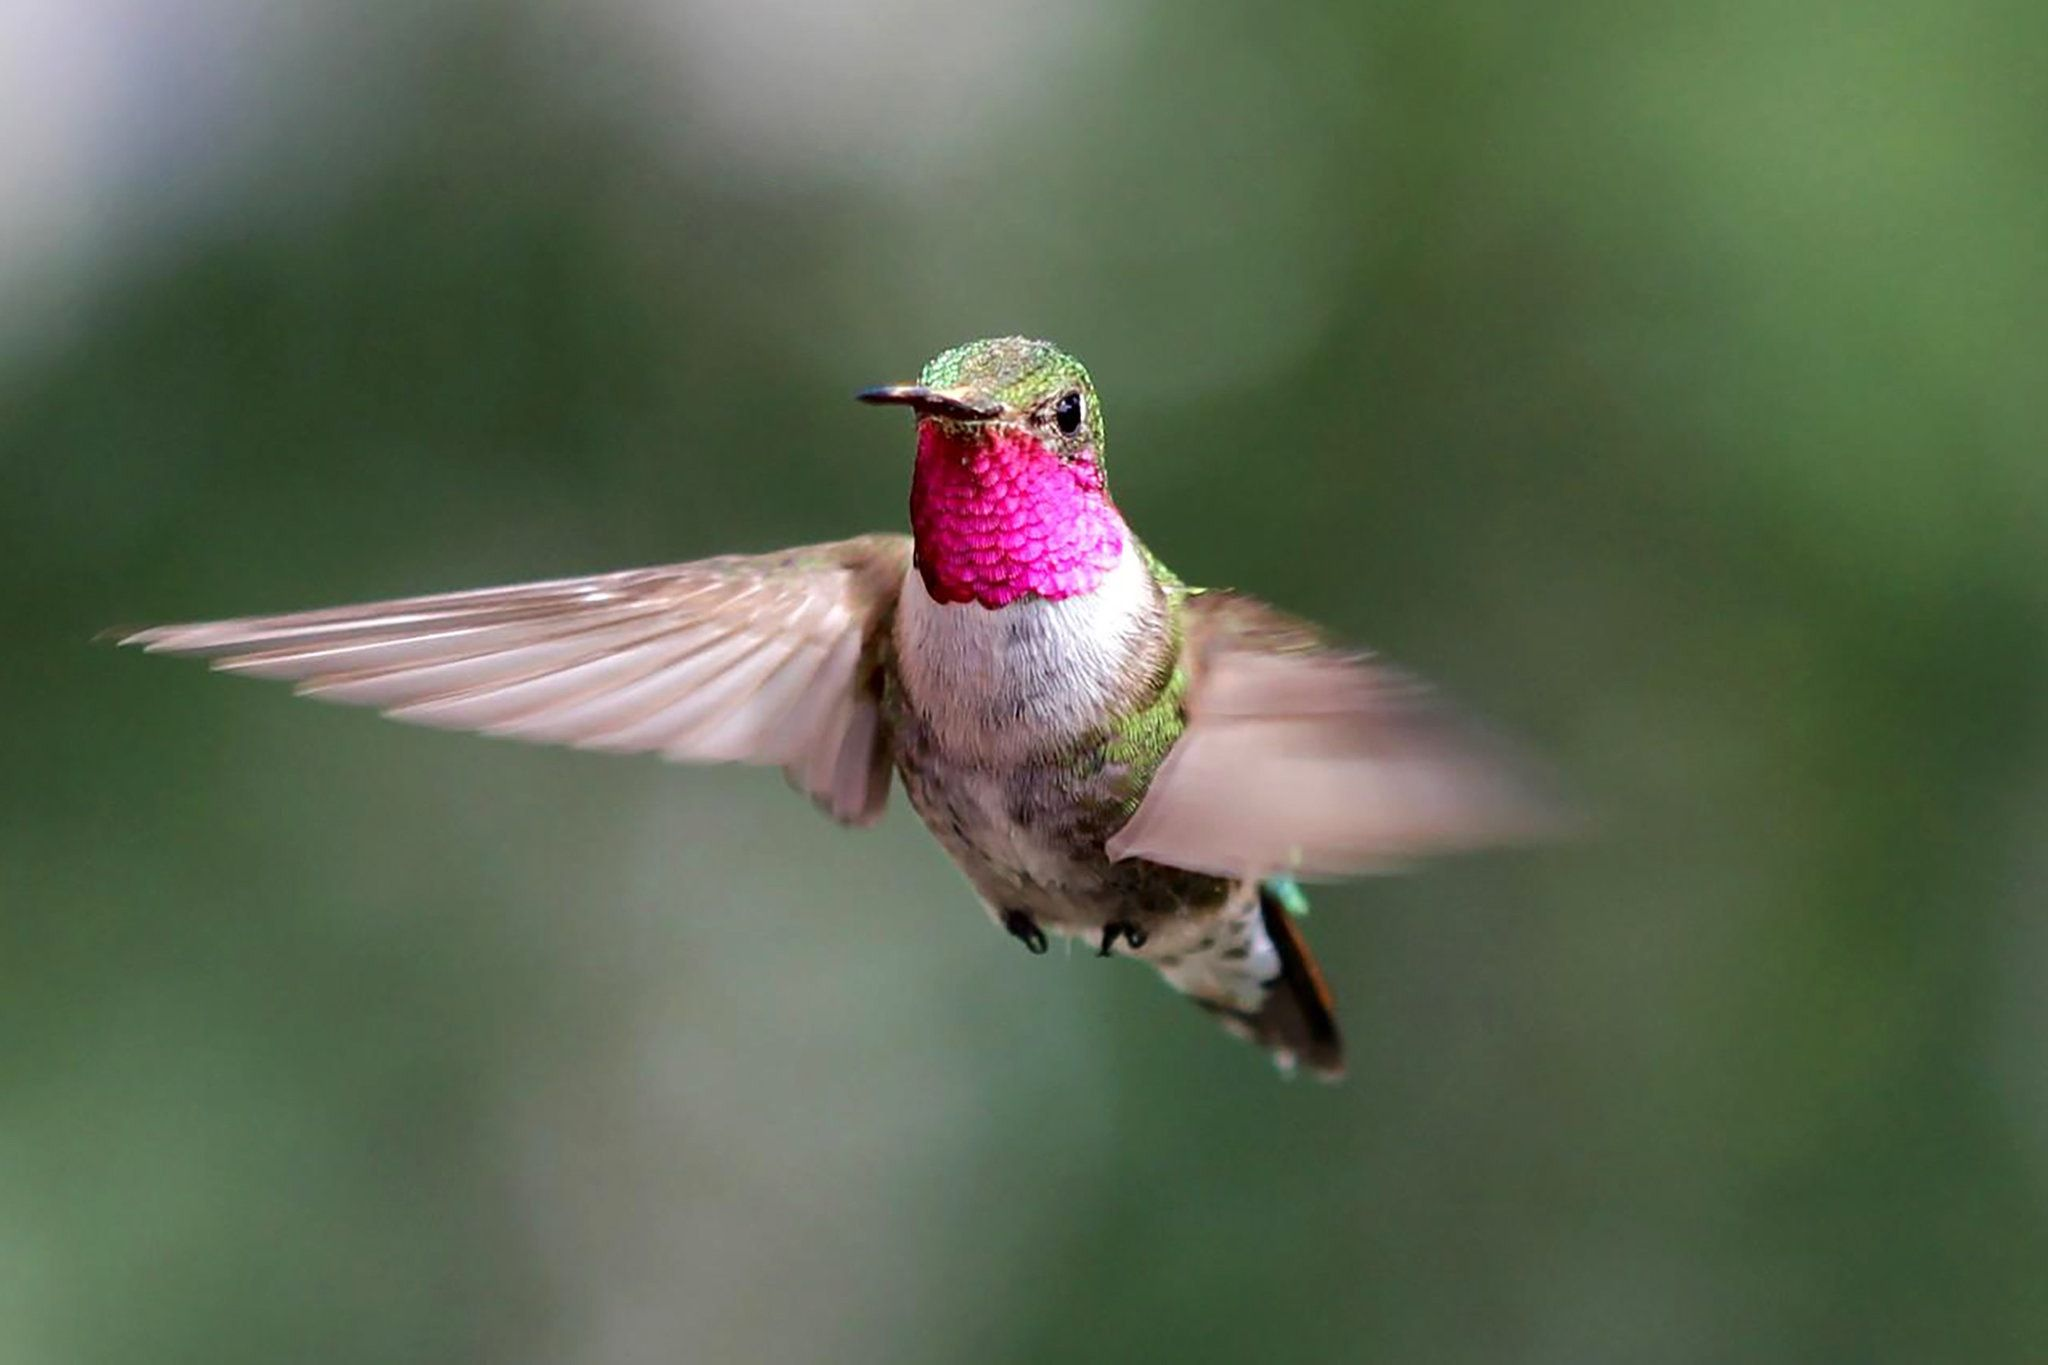 Hummingbirds Navigate an Ultraviolet World We Never See